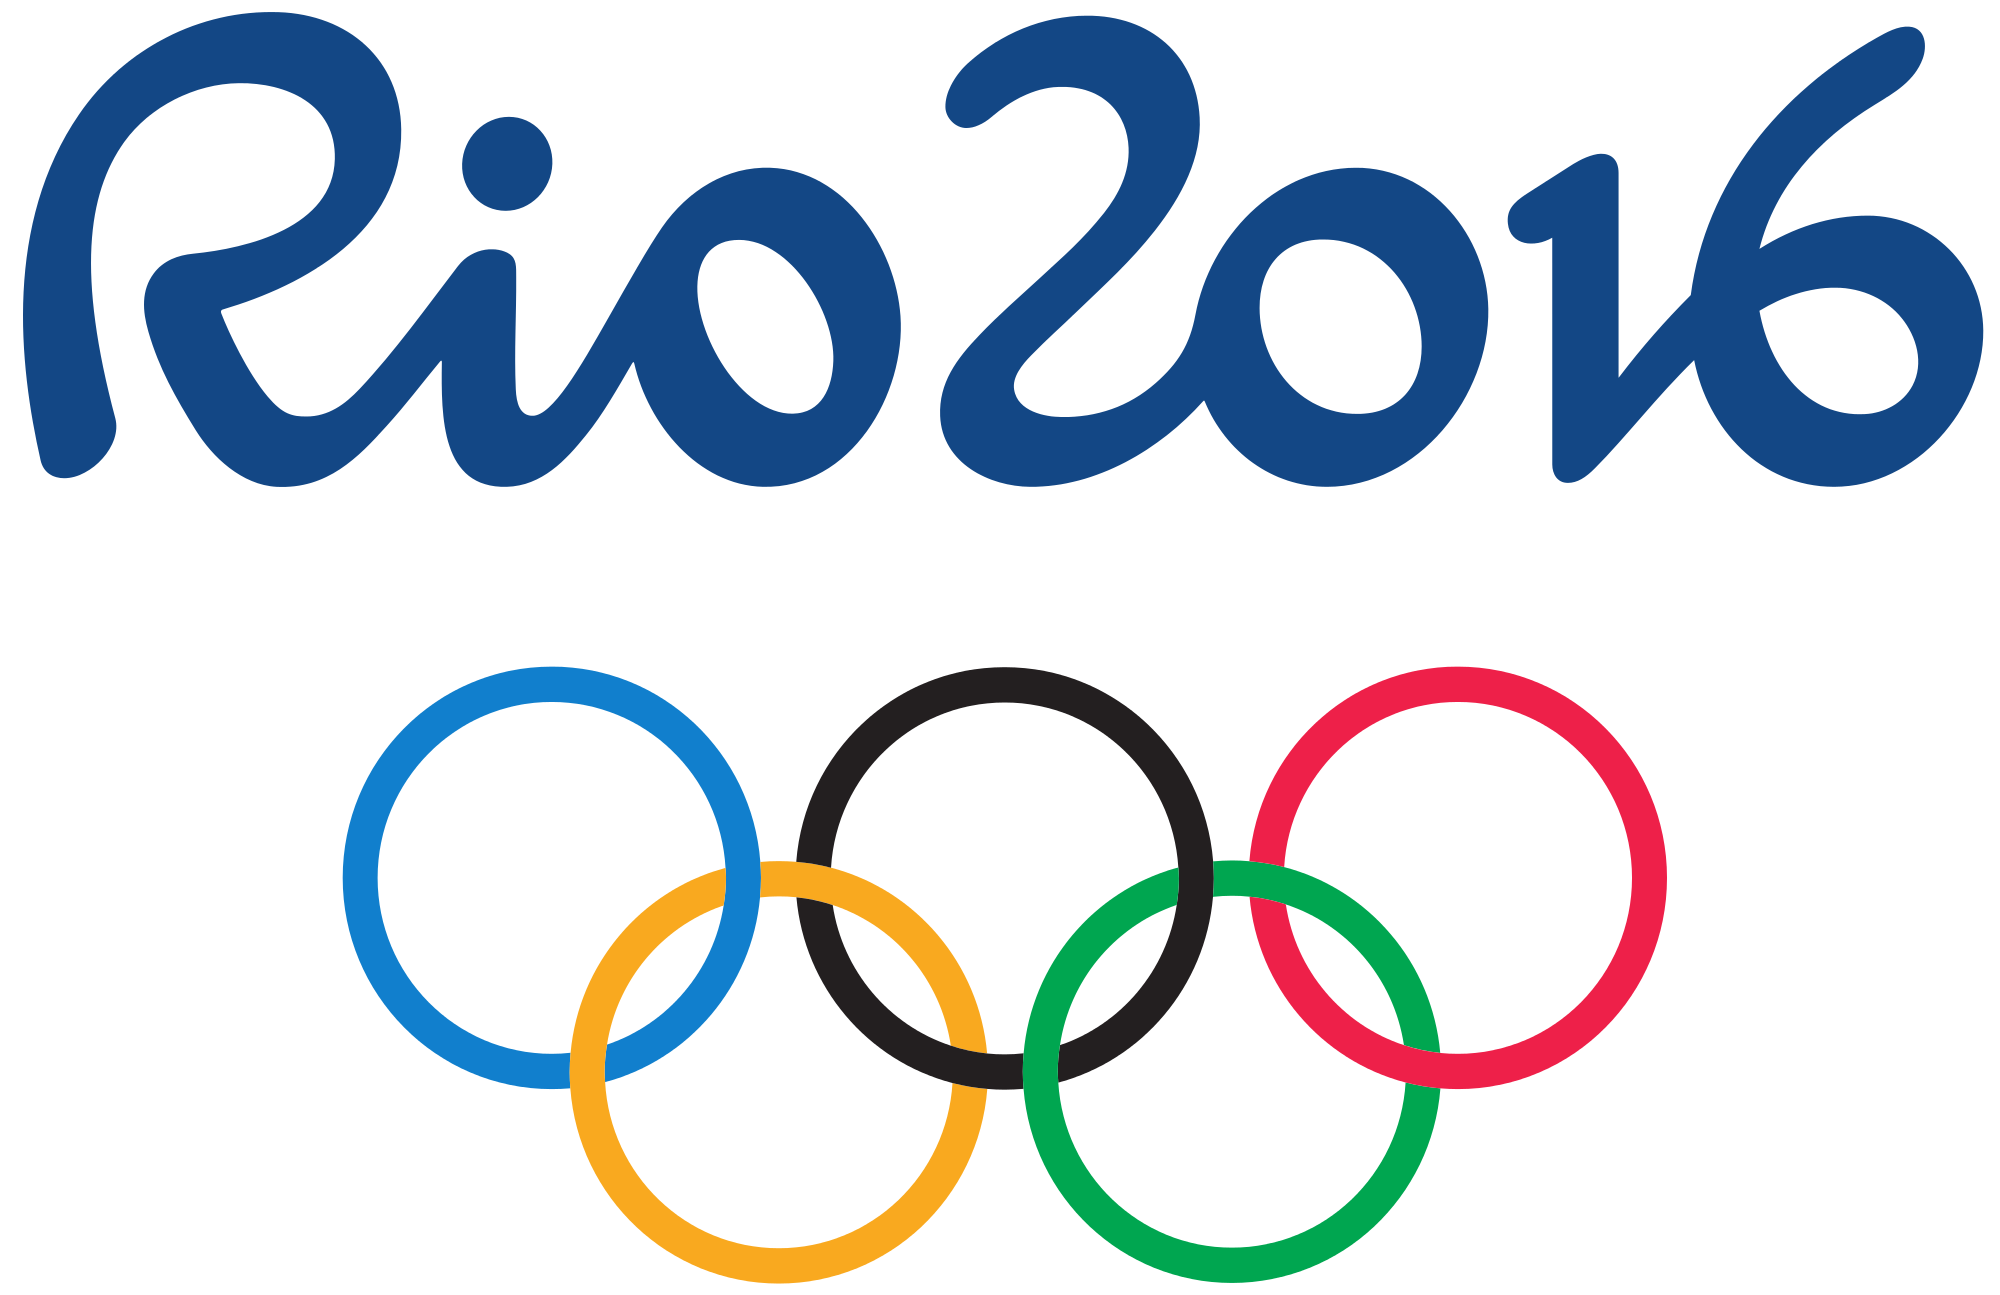 Olympic games logo png. Tips for getting